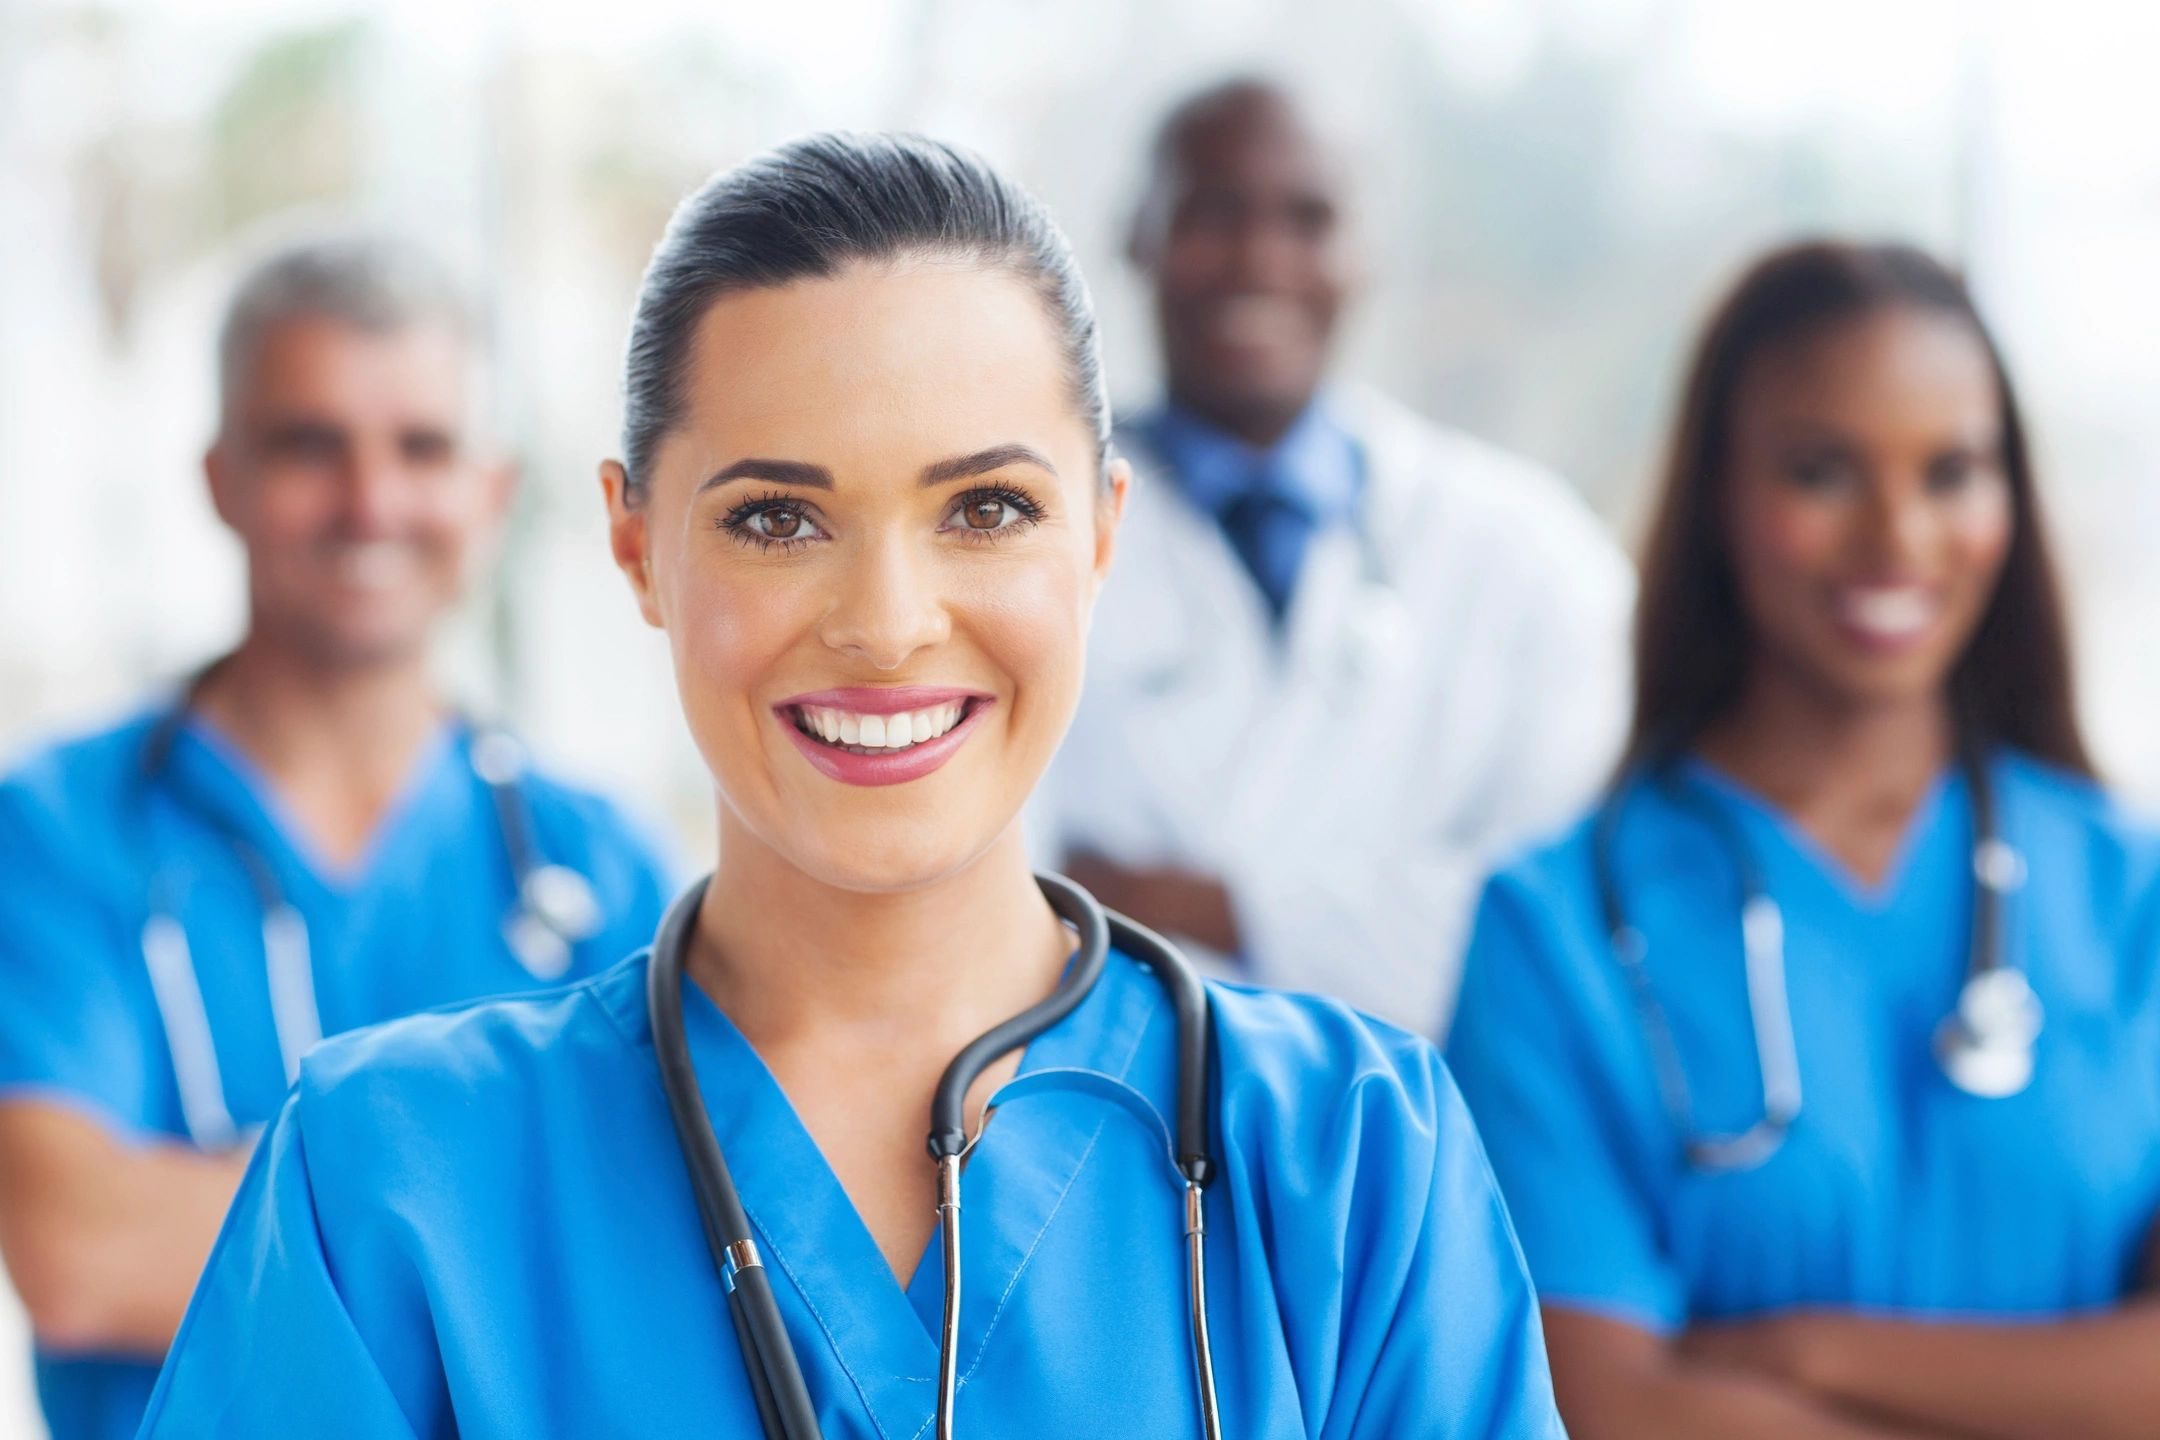 Shocking Challenges You Could Face In Your Nursing Career